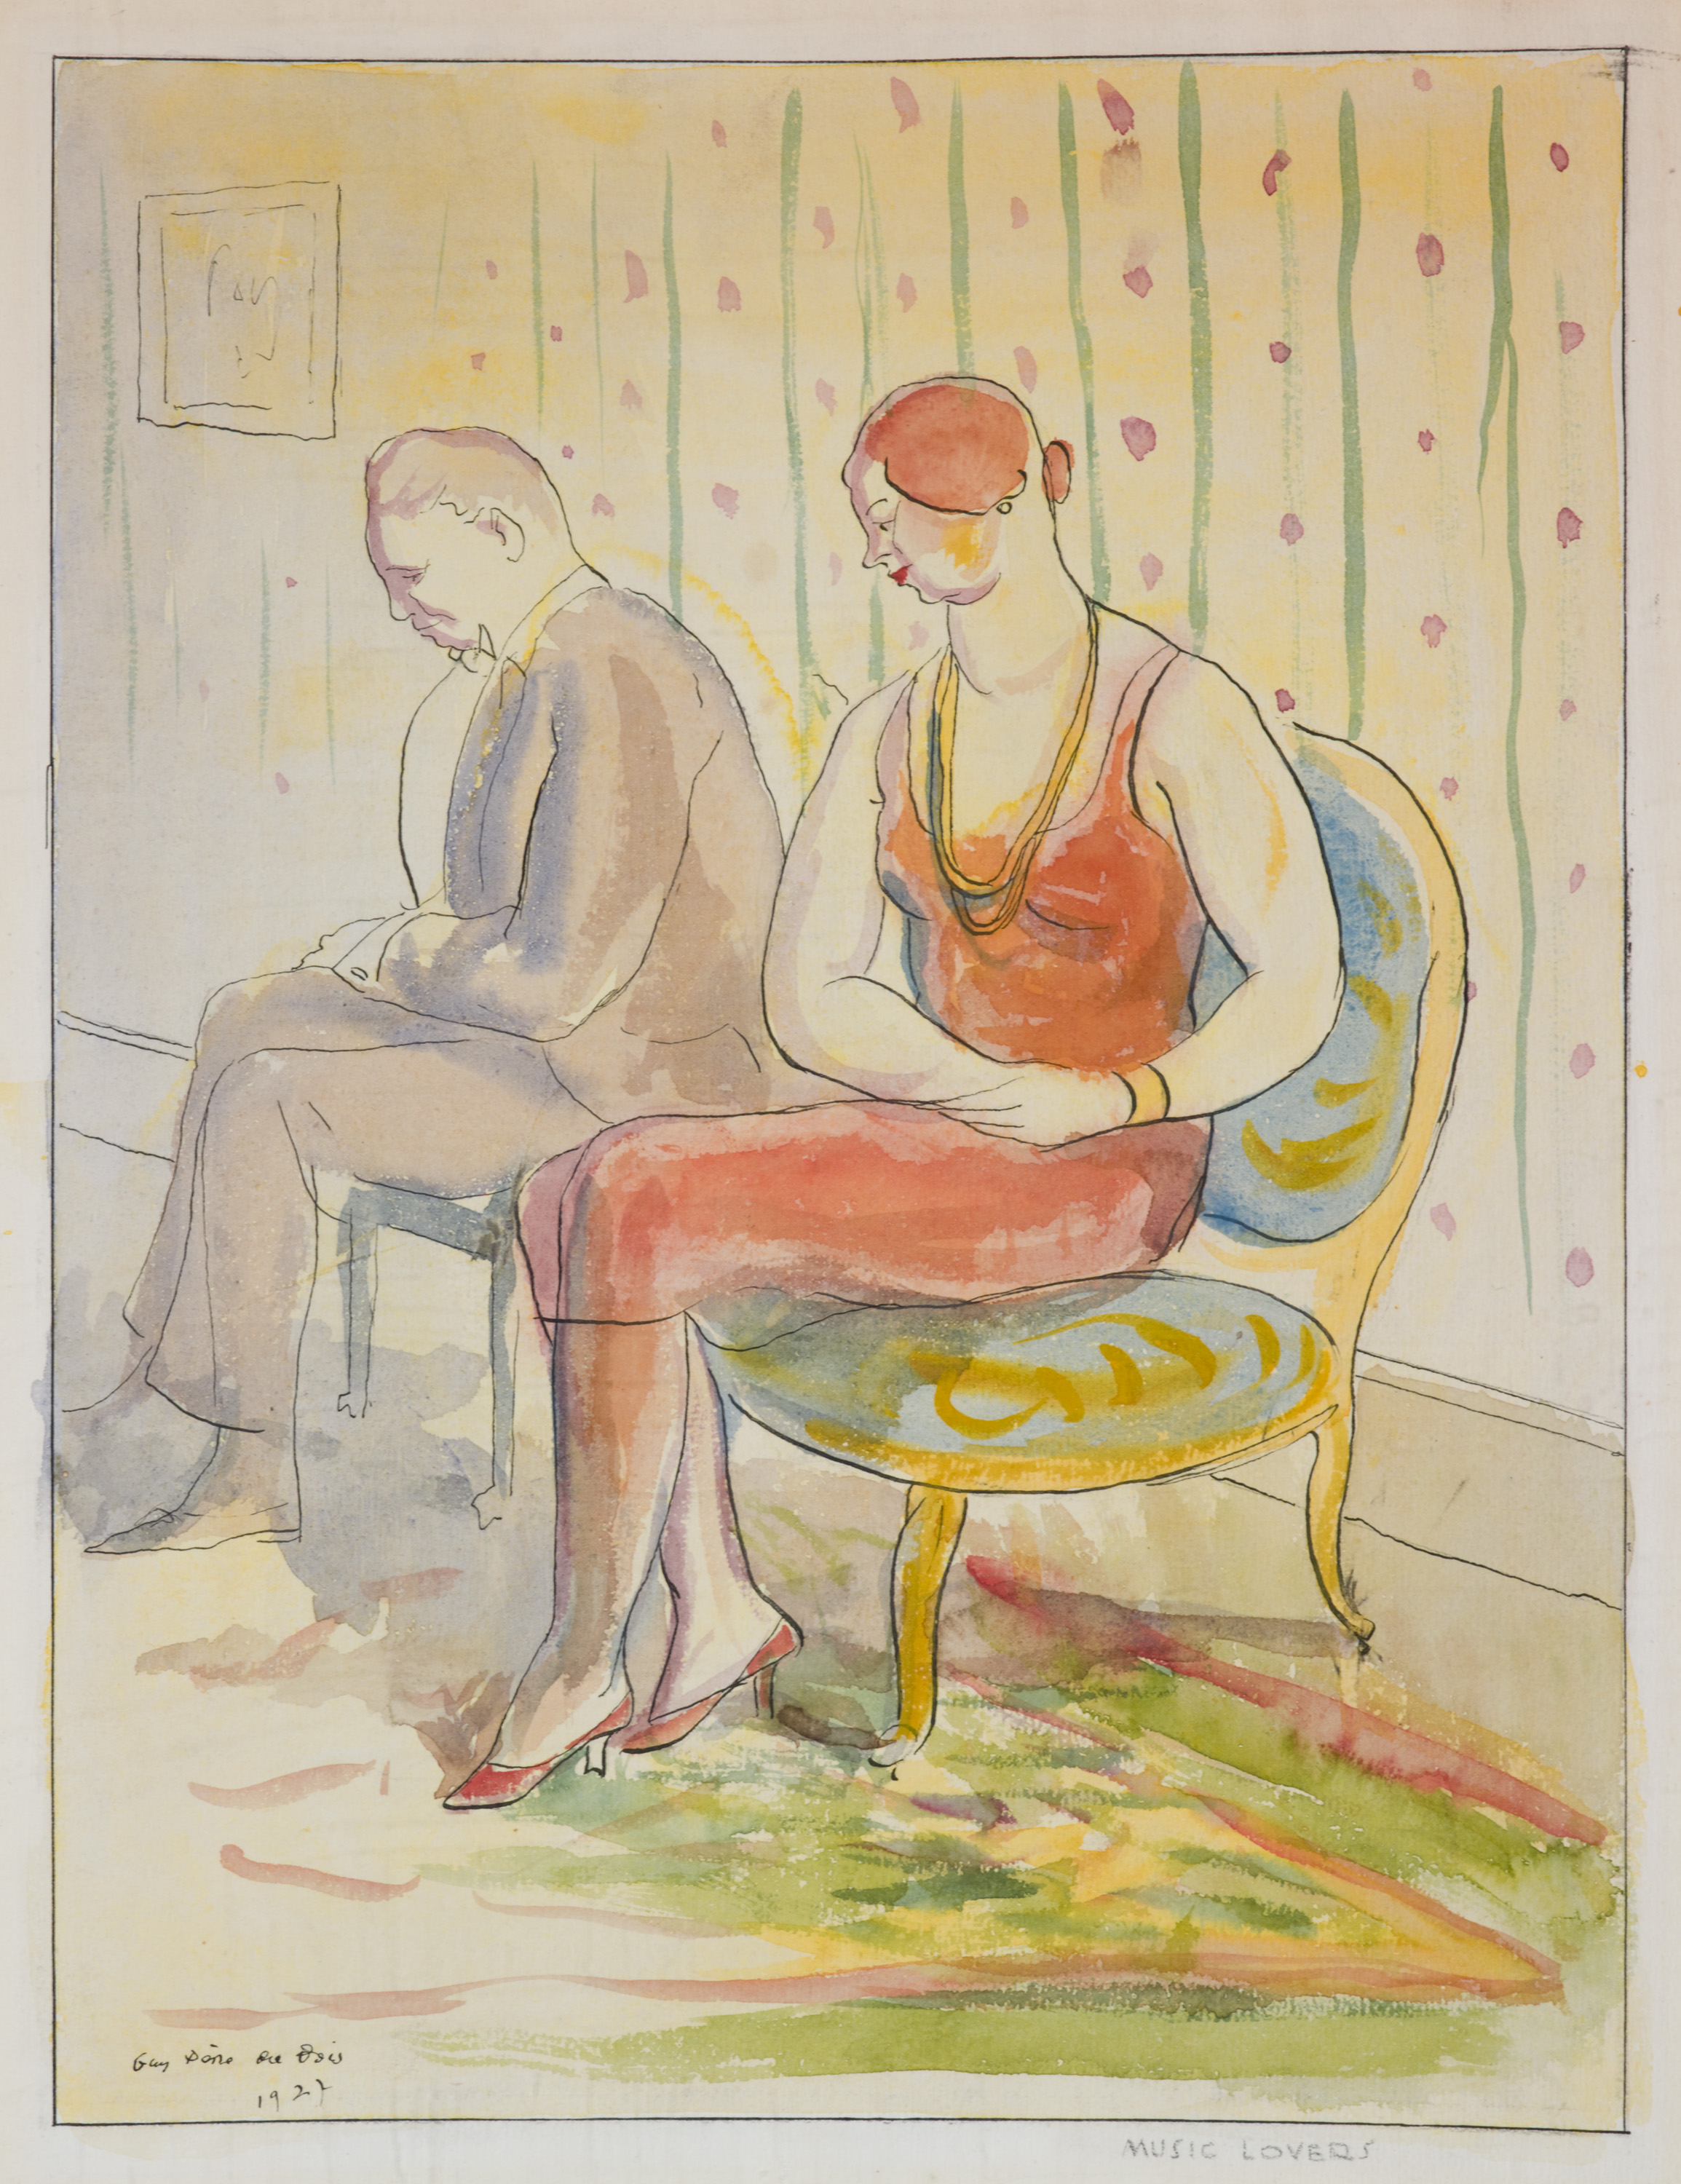 Drawing and watercolor of two figures sitting on chairs- a man in grey and a woman in red with green carpet